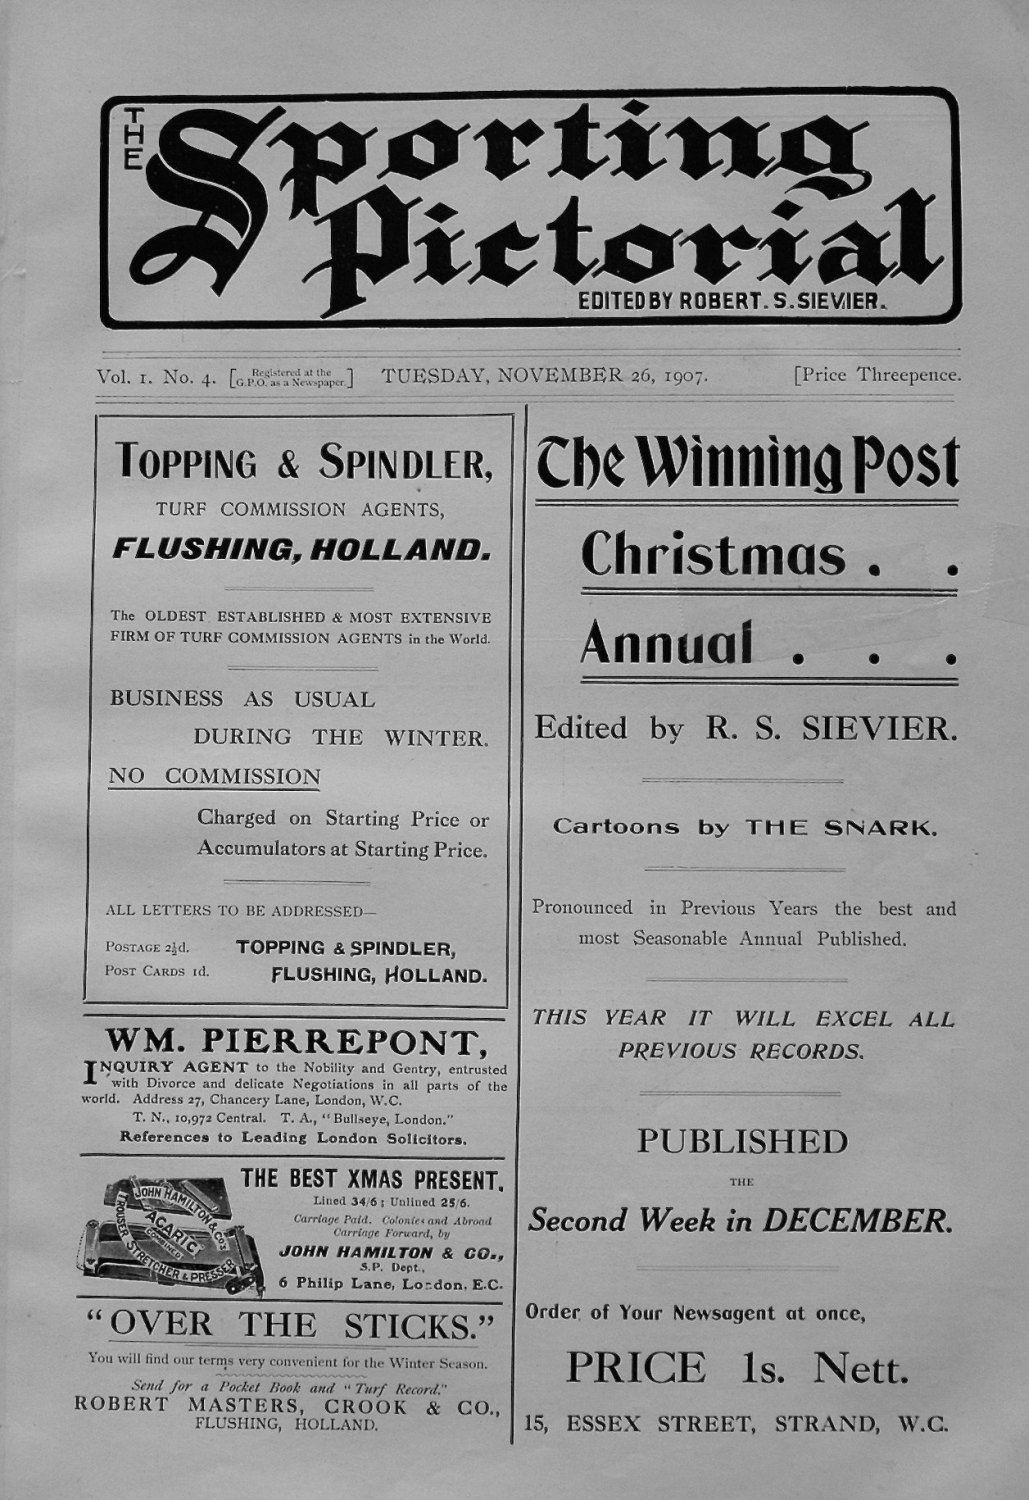 Sporting Pictorial. No. 4. November 26th 1907.